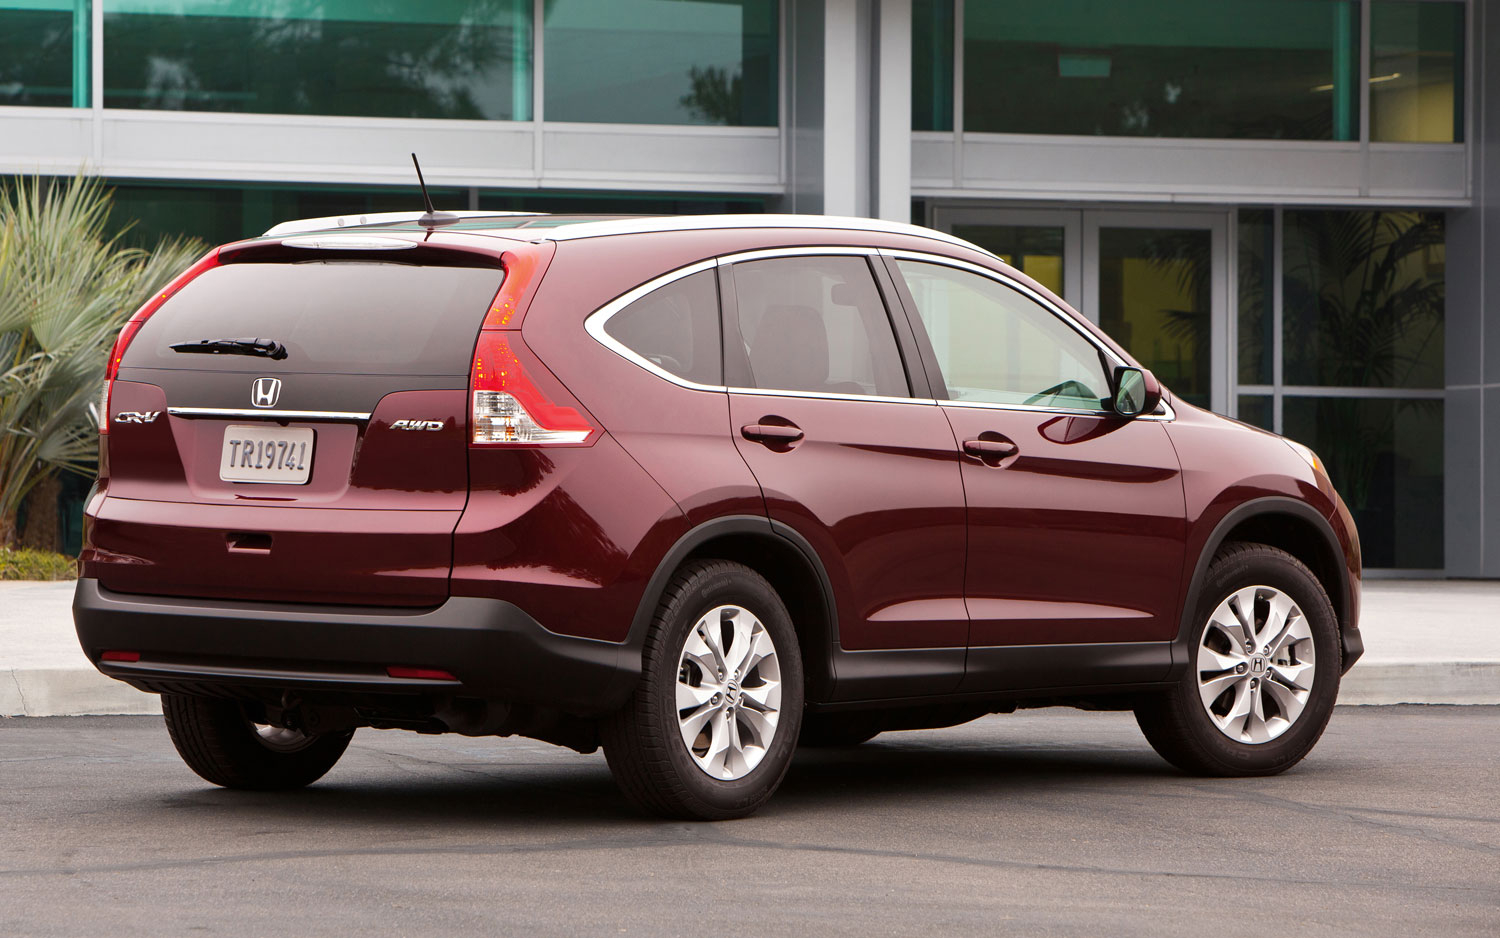 Honda CR-V Is Best-Selling CUV In April 2013